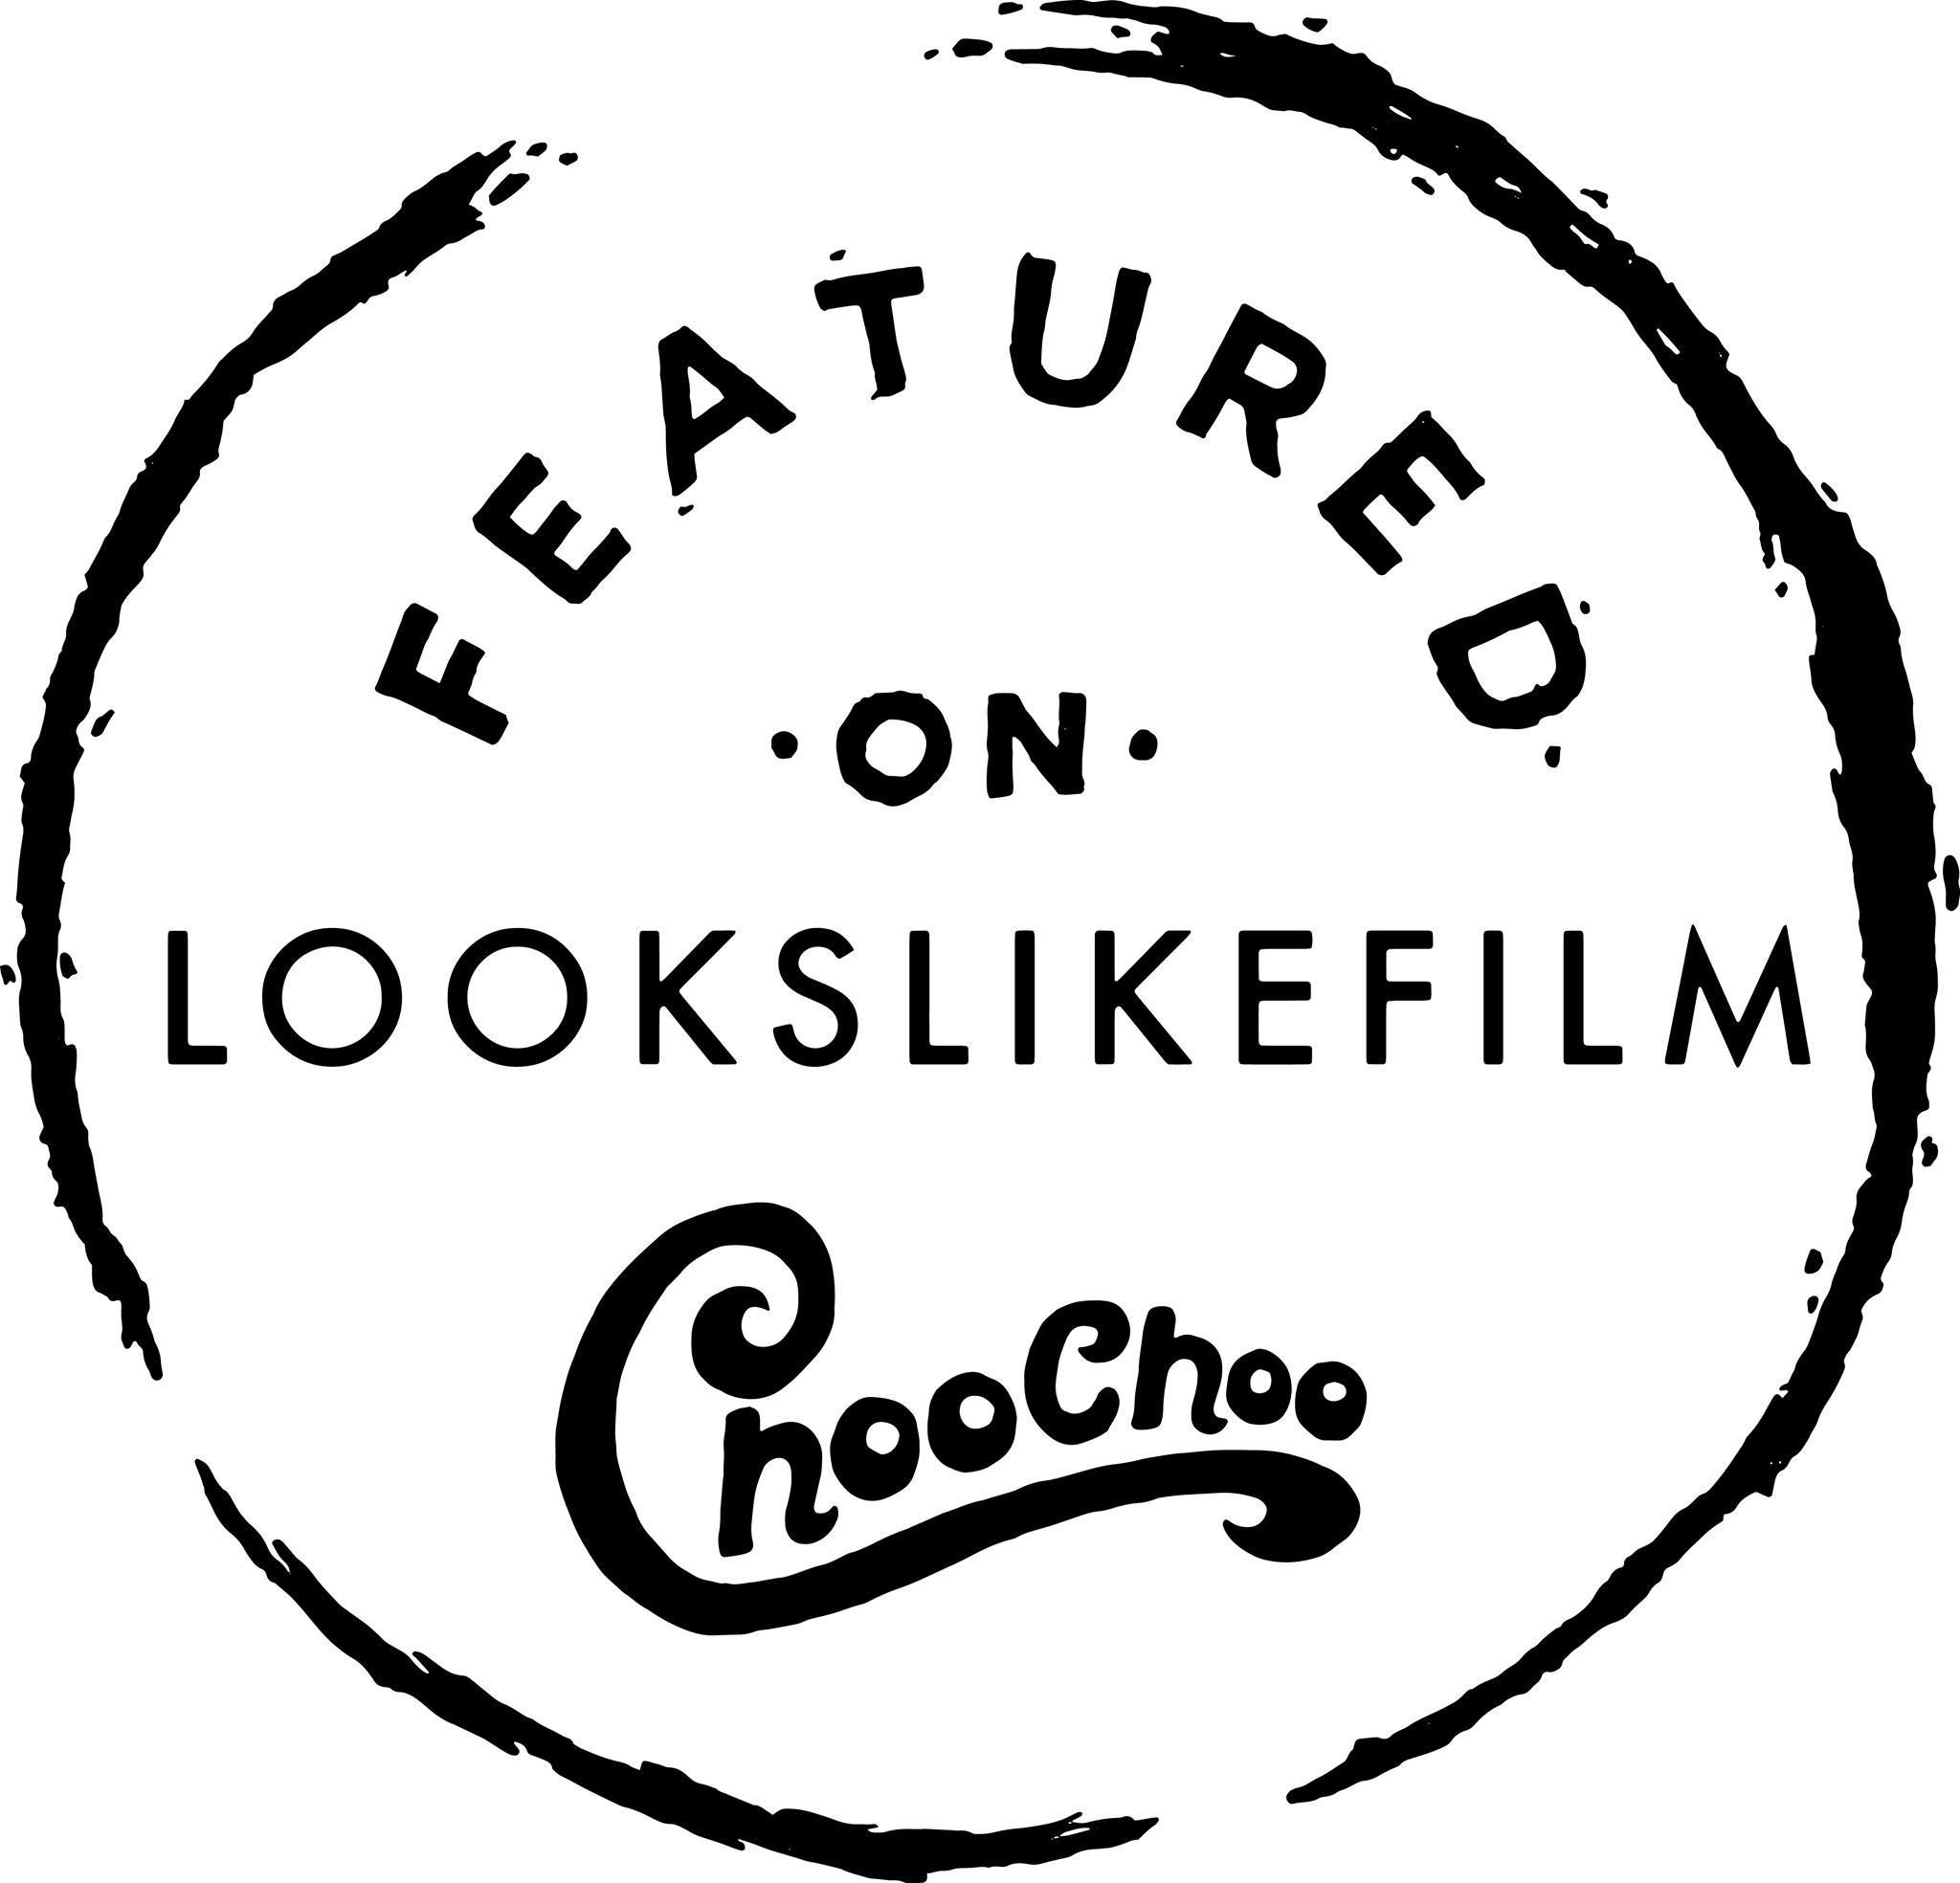 Featured on LLF - Recent feature over on the LOOKSLIKEFILM community